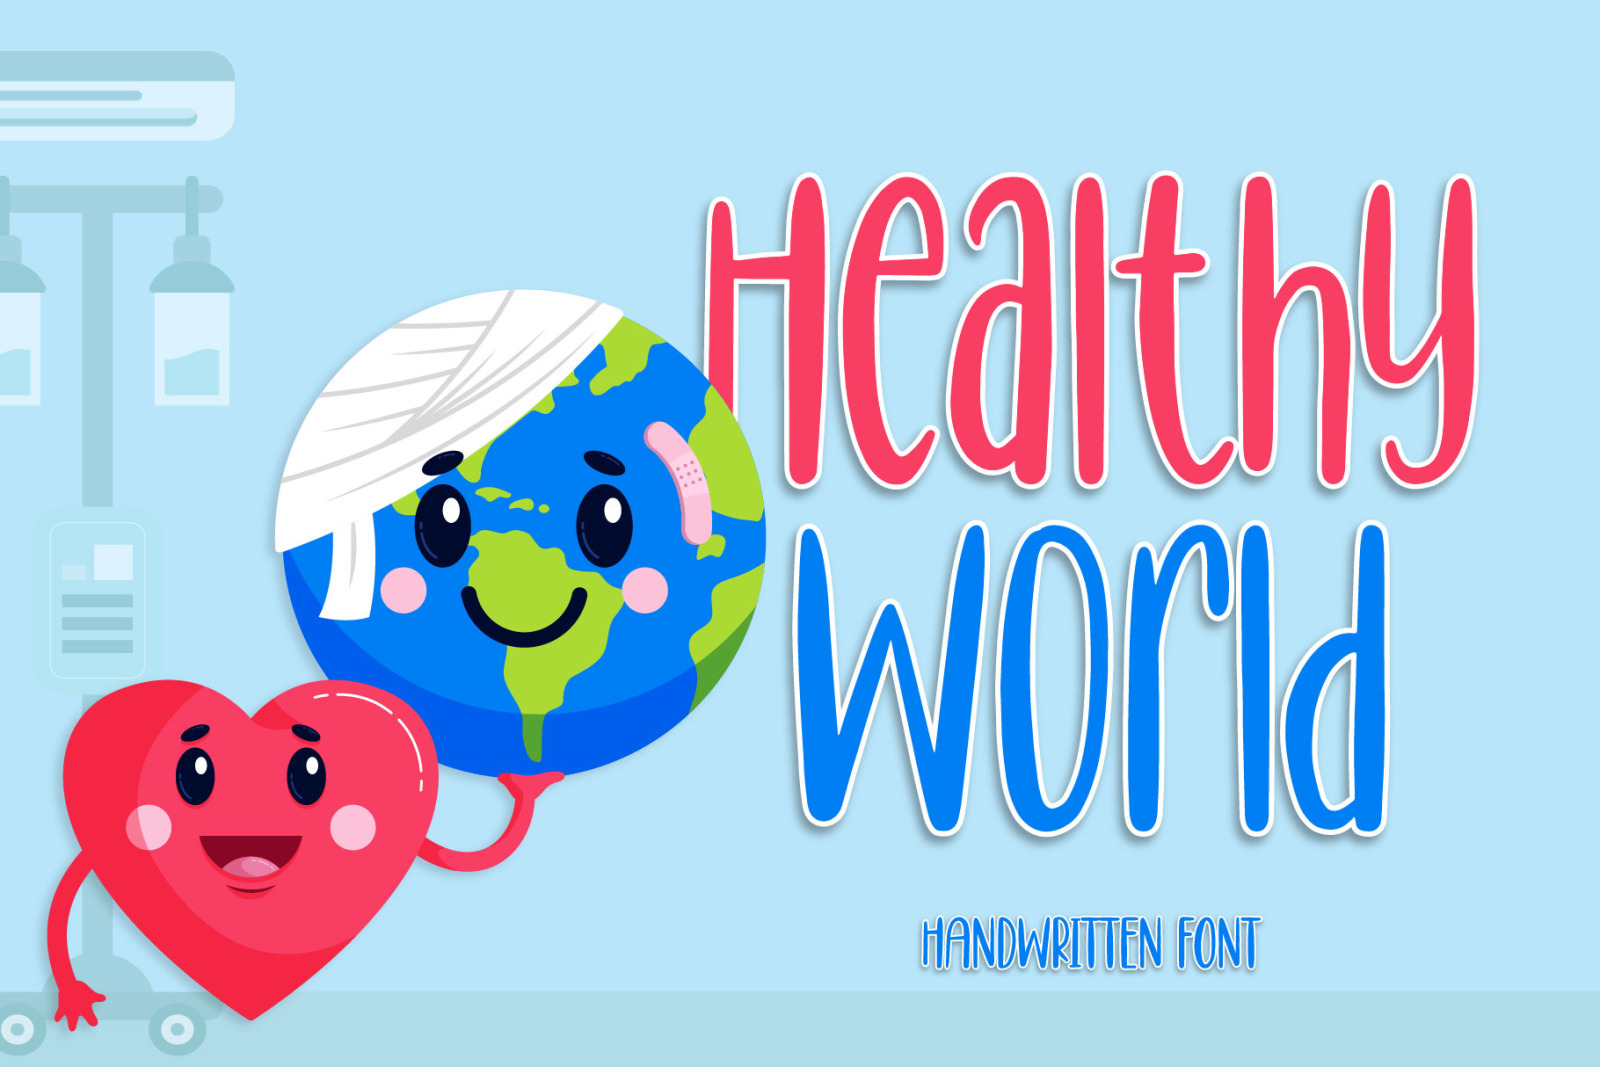 Healthy World - Cute Handwritten Font